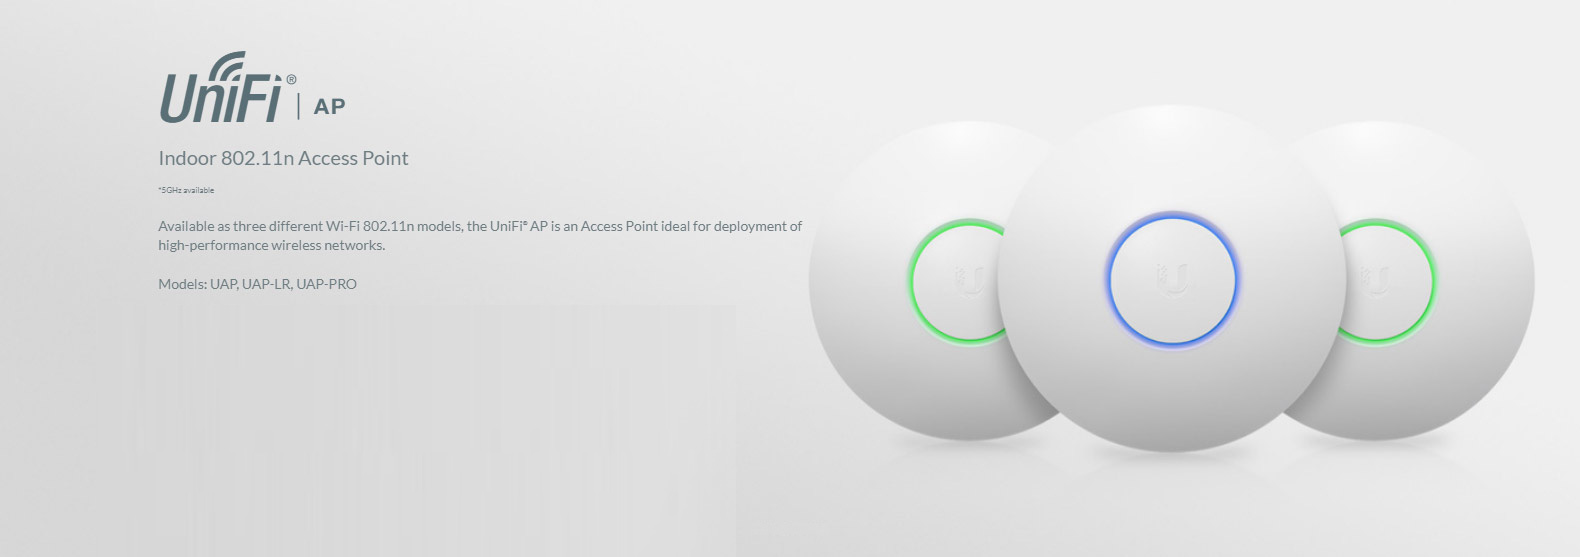 indoor access point ubnt